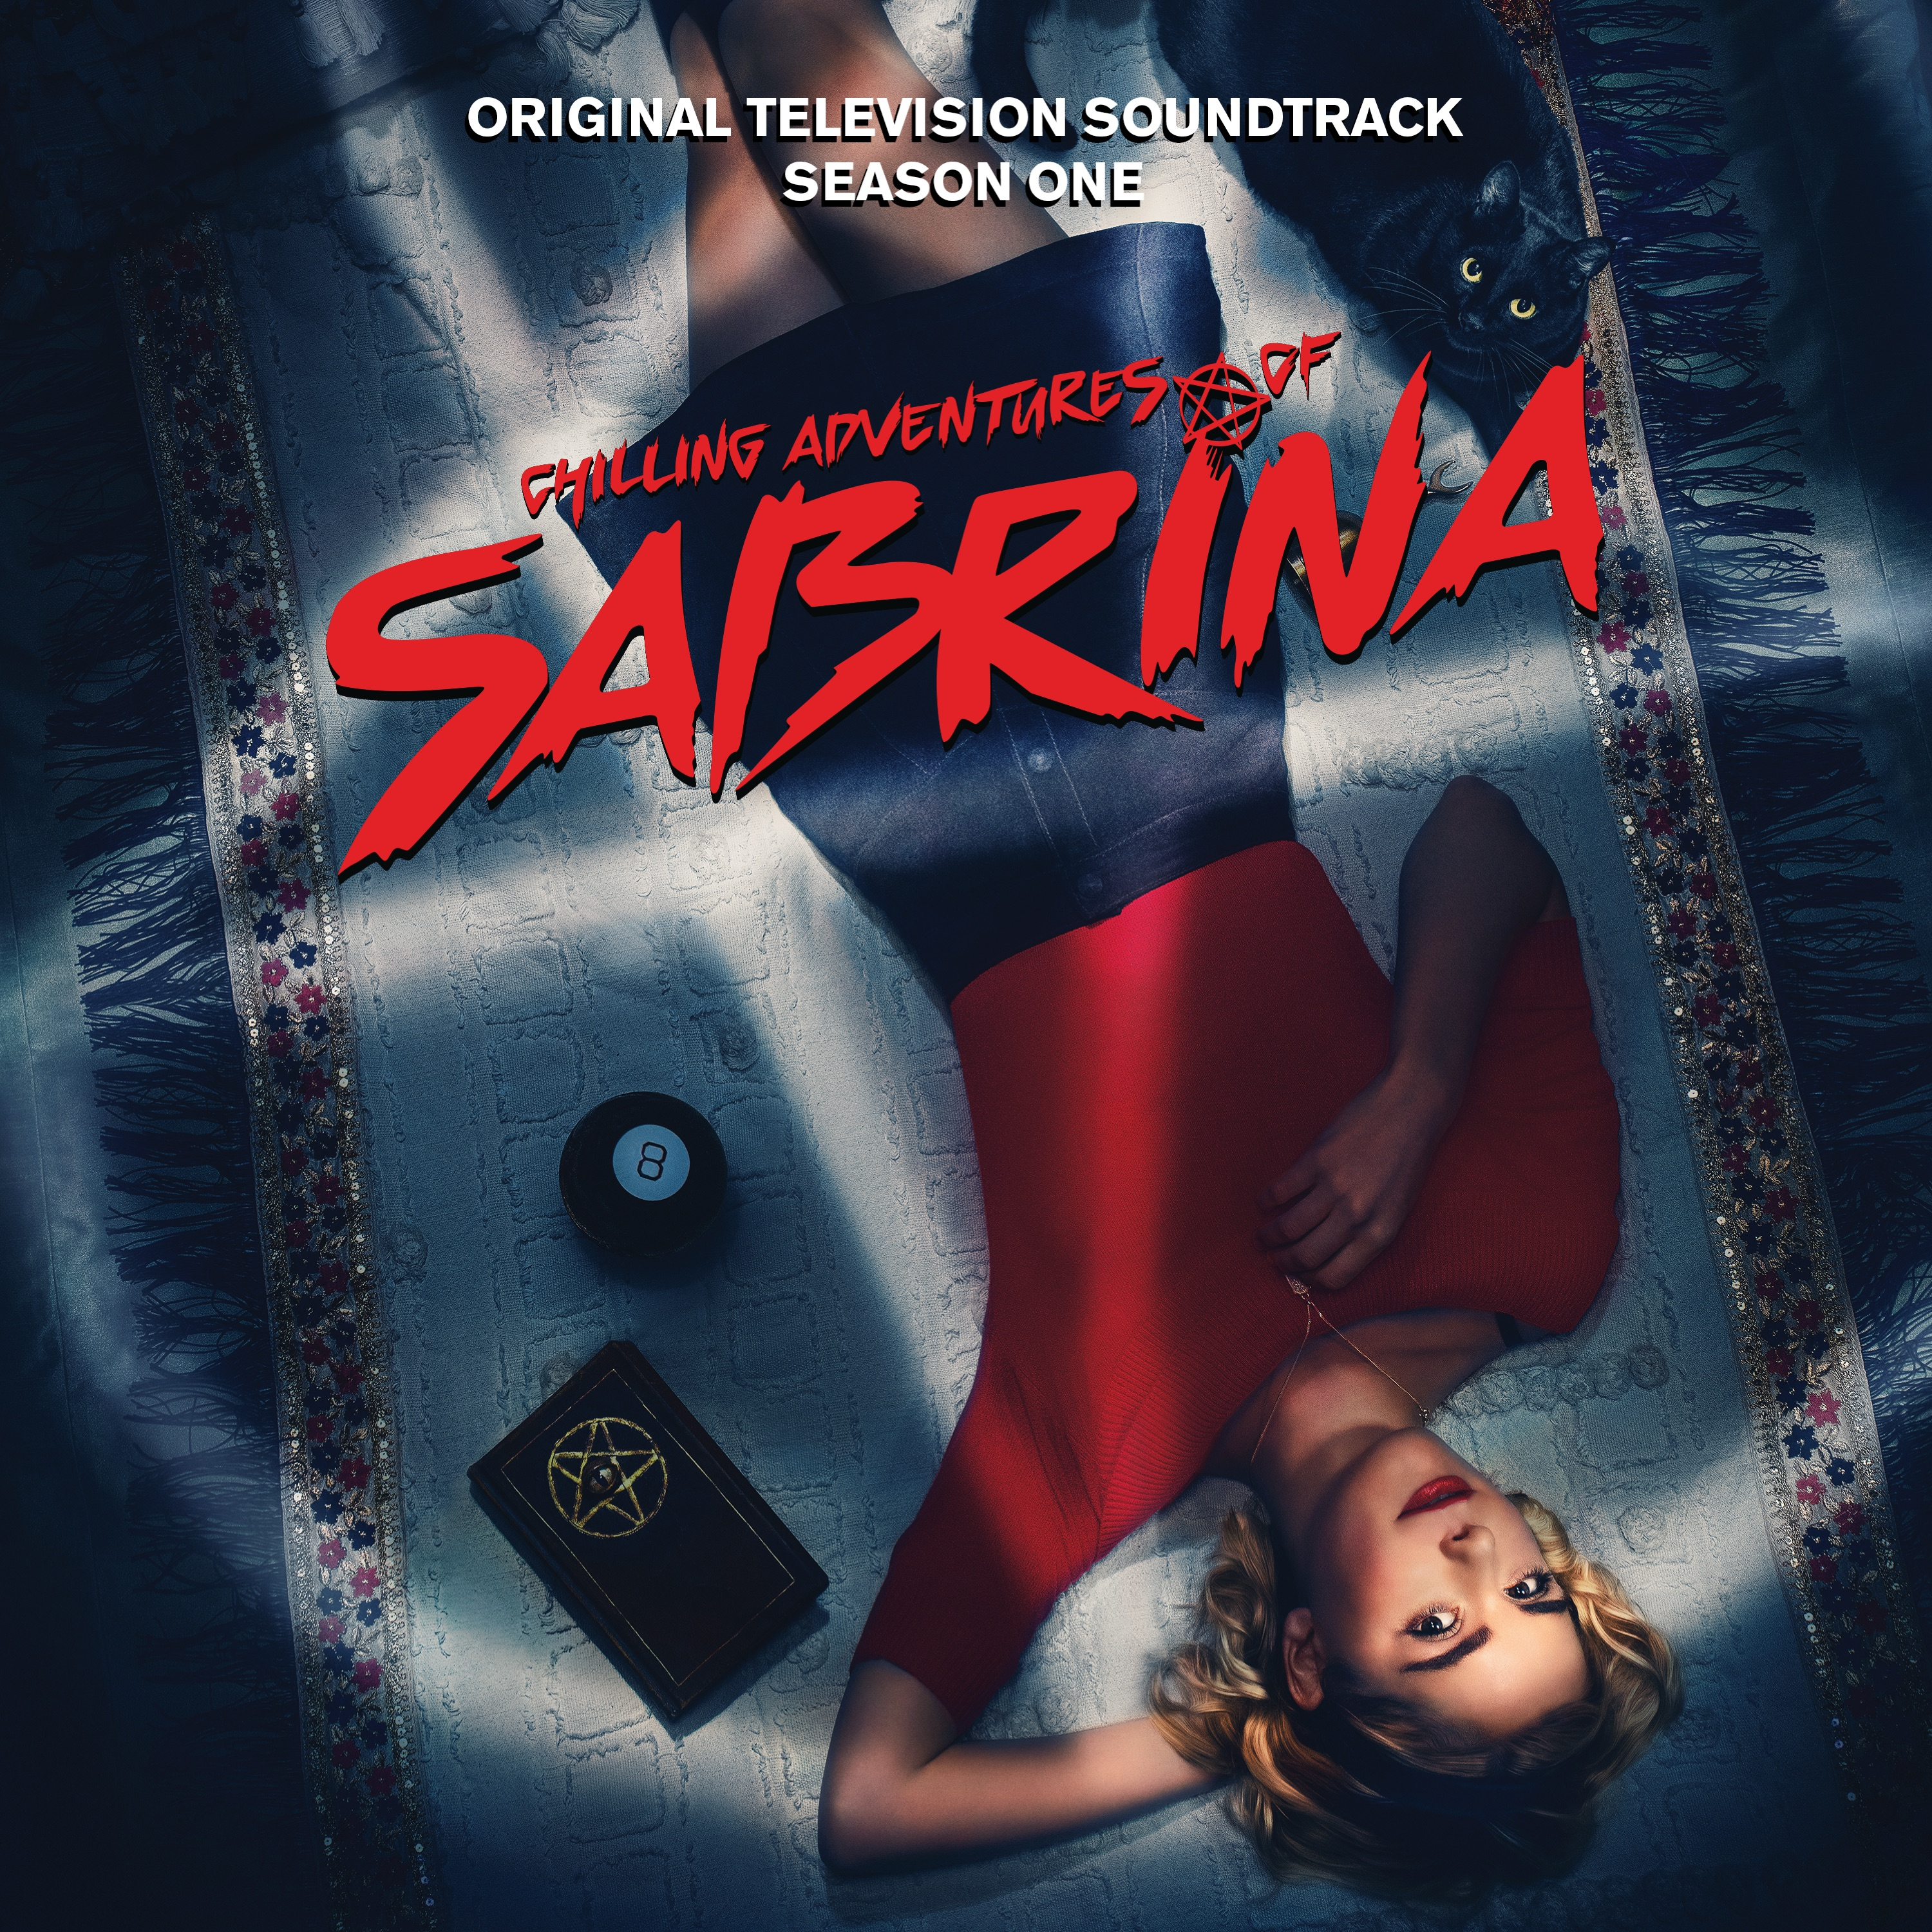 Chilling Adventures Of Sabrina Soundtrack S2e1 Chapter